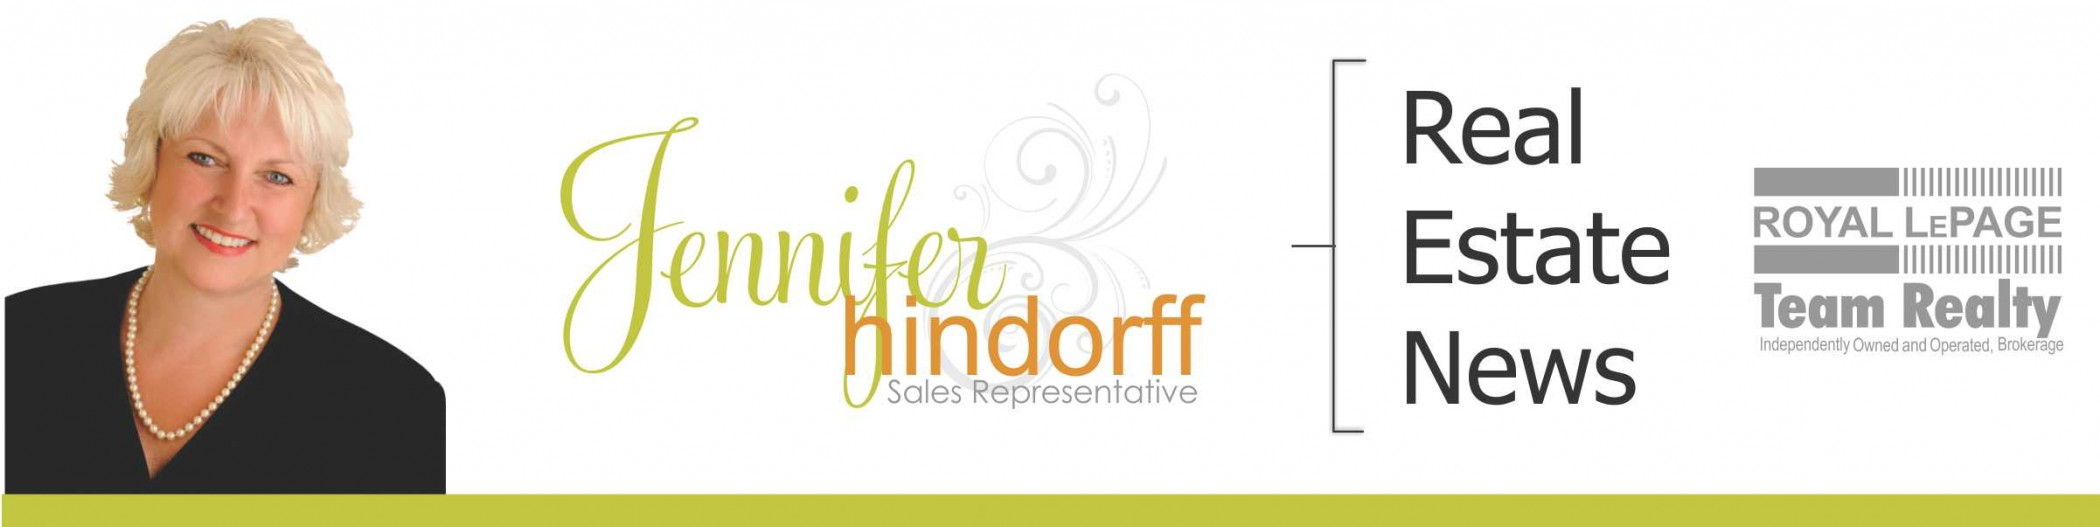 Jennifer Hindorff 8 x 2 Header Newsletter